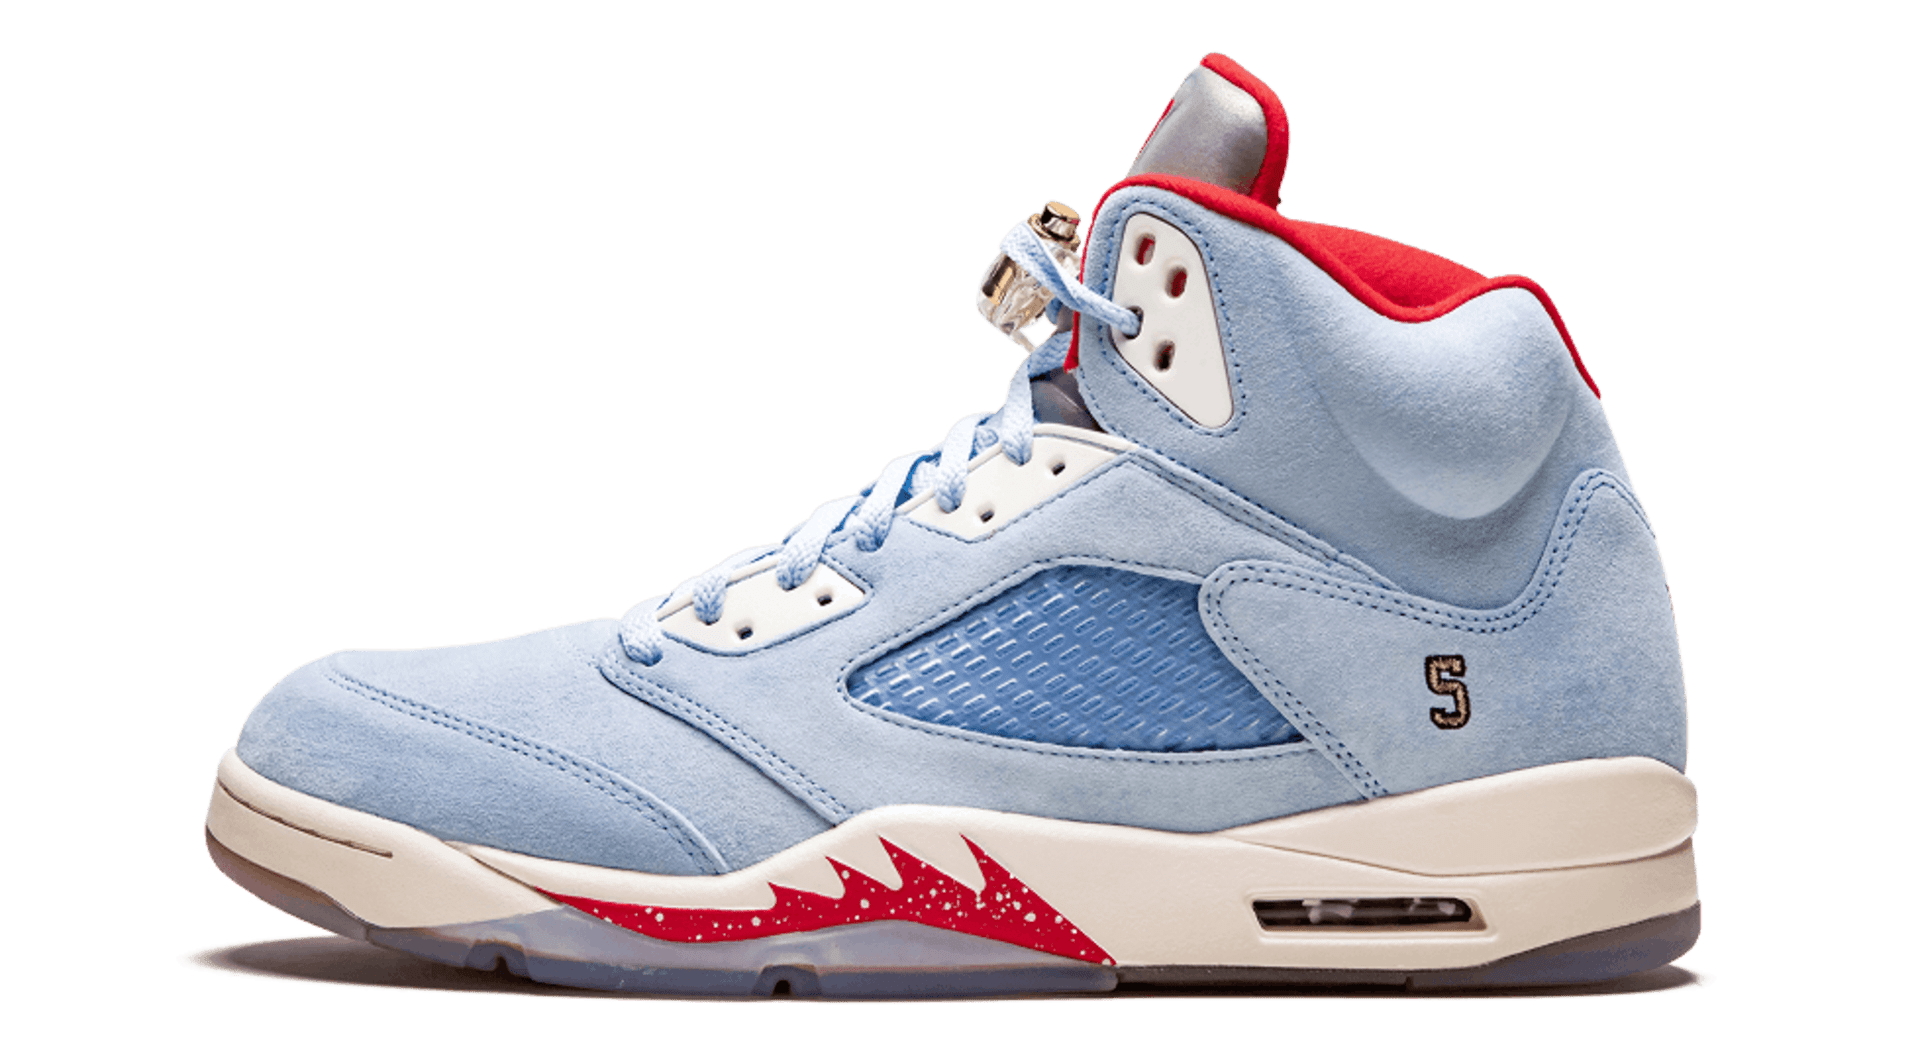 meilleur site web e78f9 8c1d3 Best Air Jordans of 2019 (So Far): Air Jordan Releases of ...